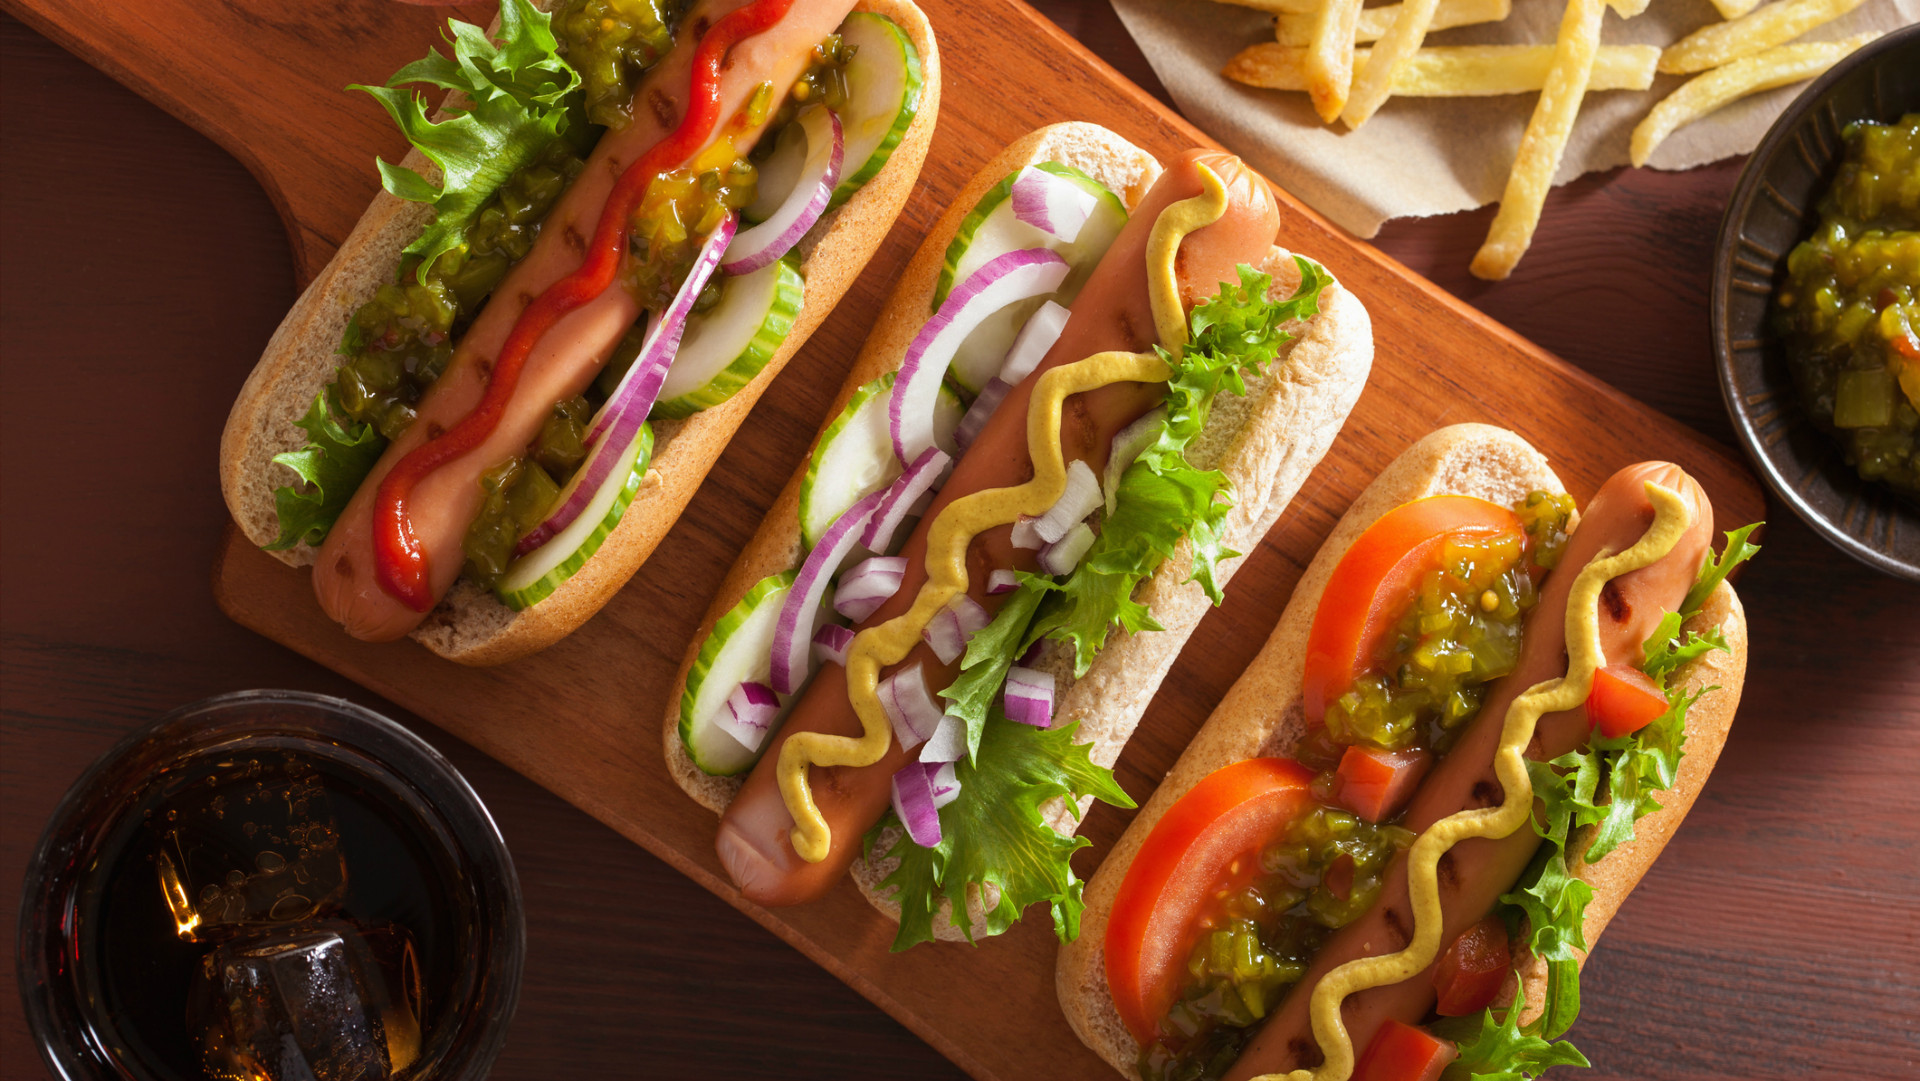 Best Healthy Hot Dogs  30 Creative Hot Dog Toppings for a Next Level Cookout